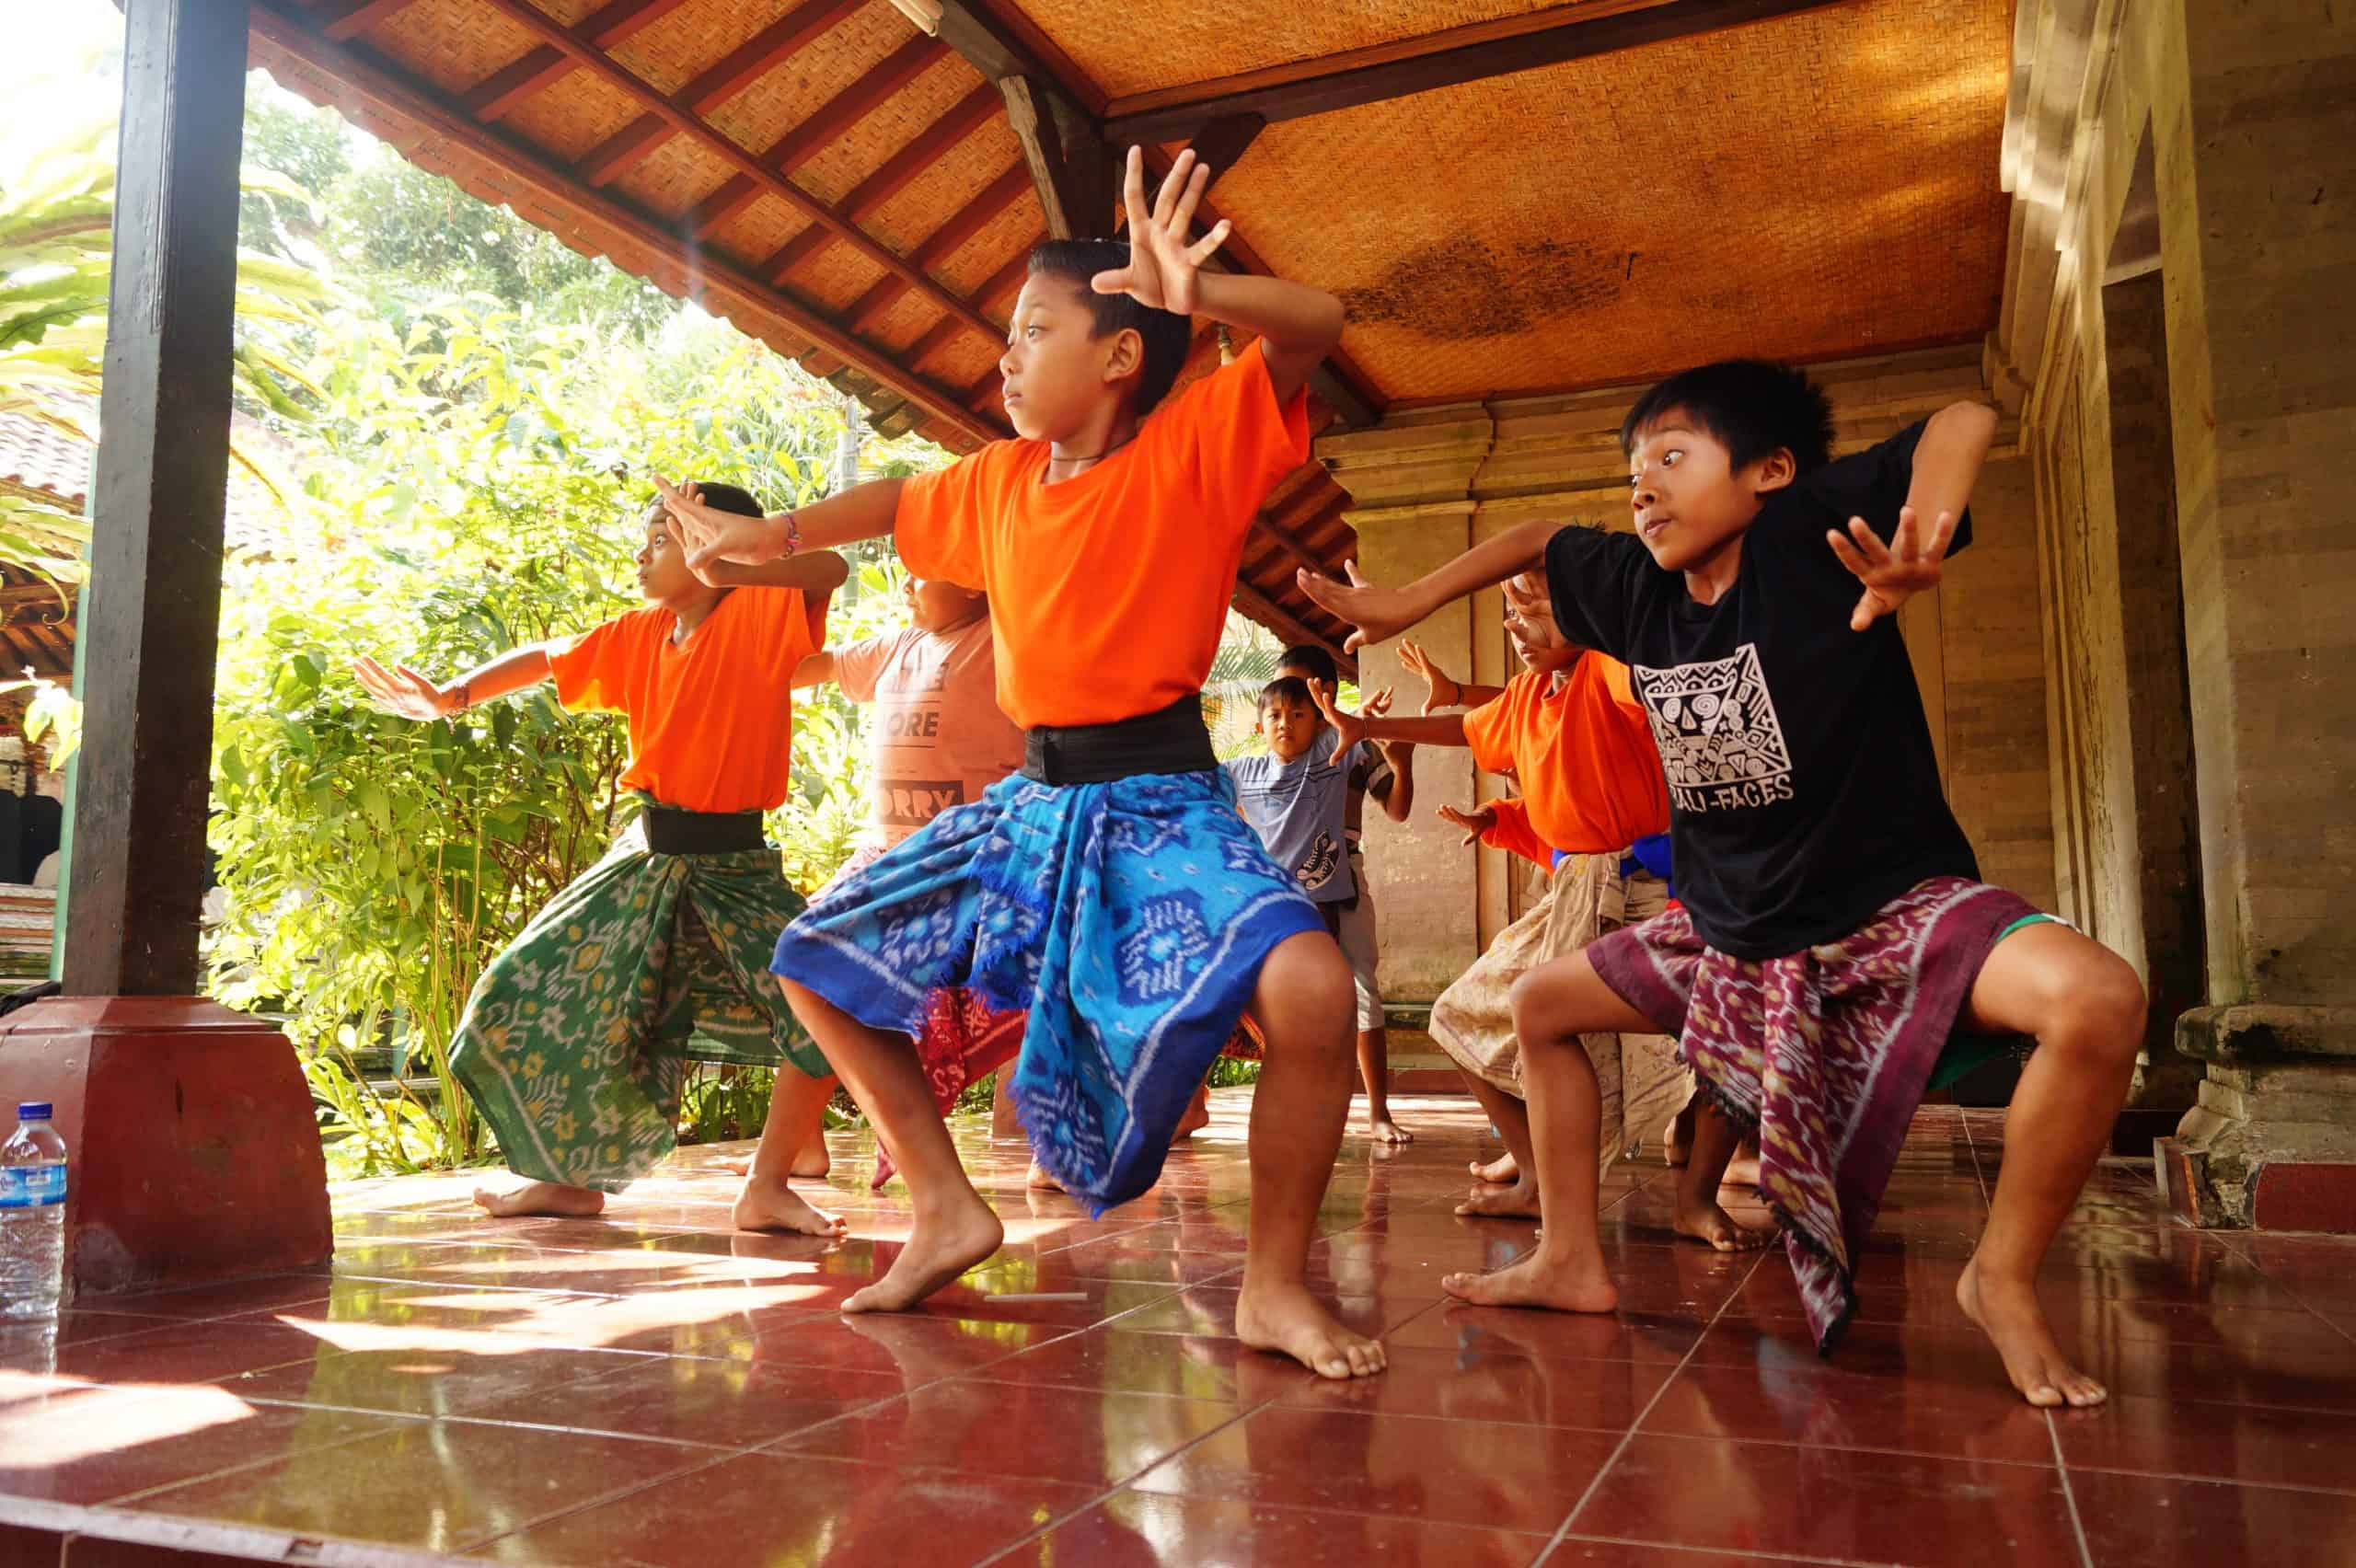 Indonesia Que ver en Ubud Danza tradicional Bali scaled - Top 5 places to see in Ubud in one day